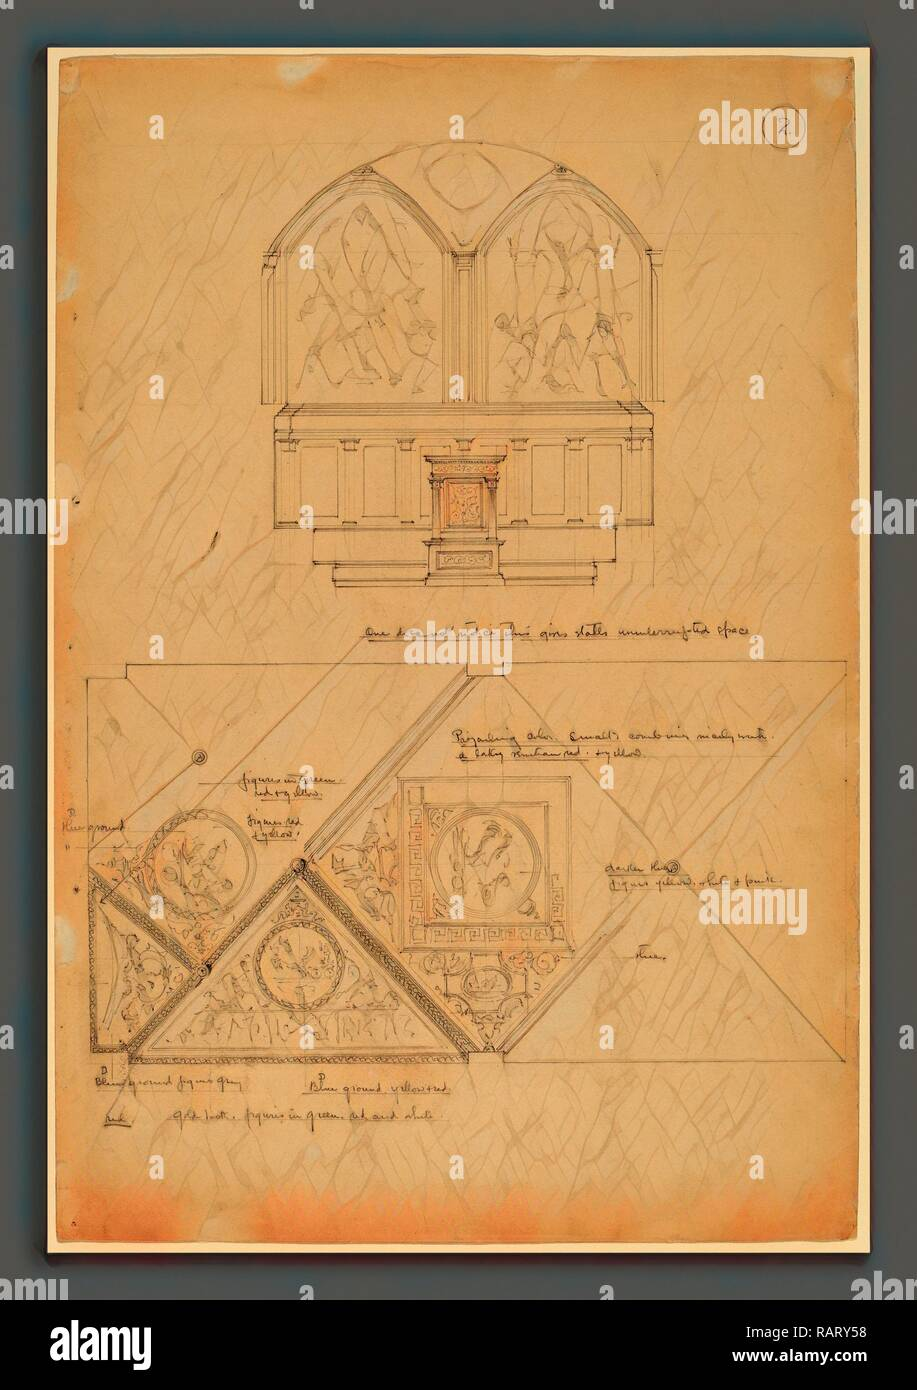 John Russell Pope, Study of an Altarpiece and Ceiling Panels, American, 1874 - 1937, d. 1896, graphite. Reimagined - Stock Image